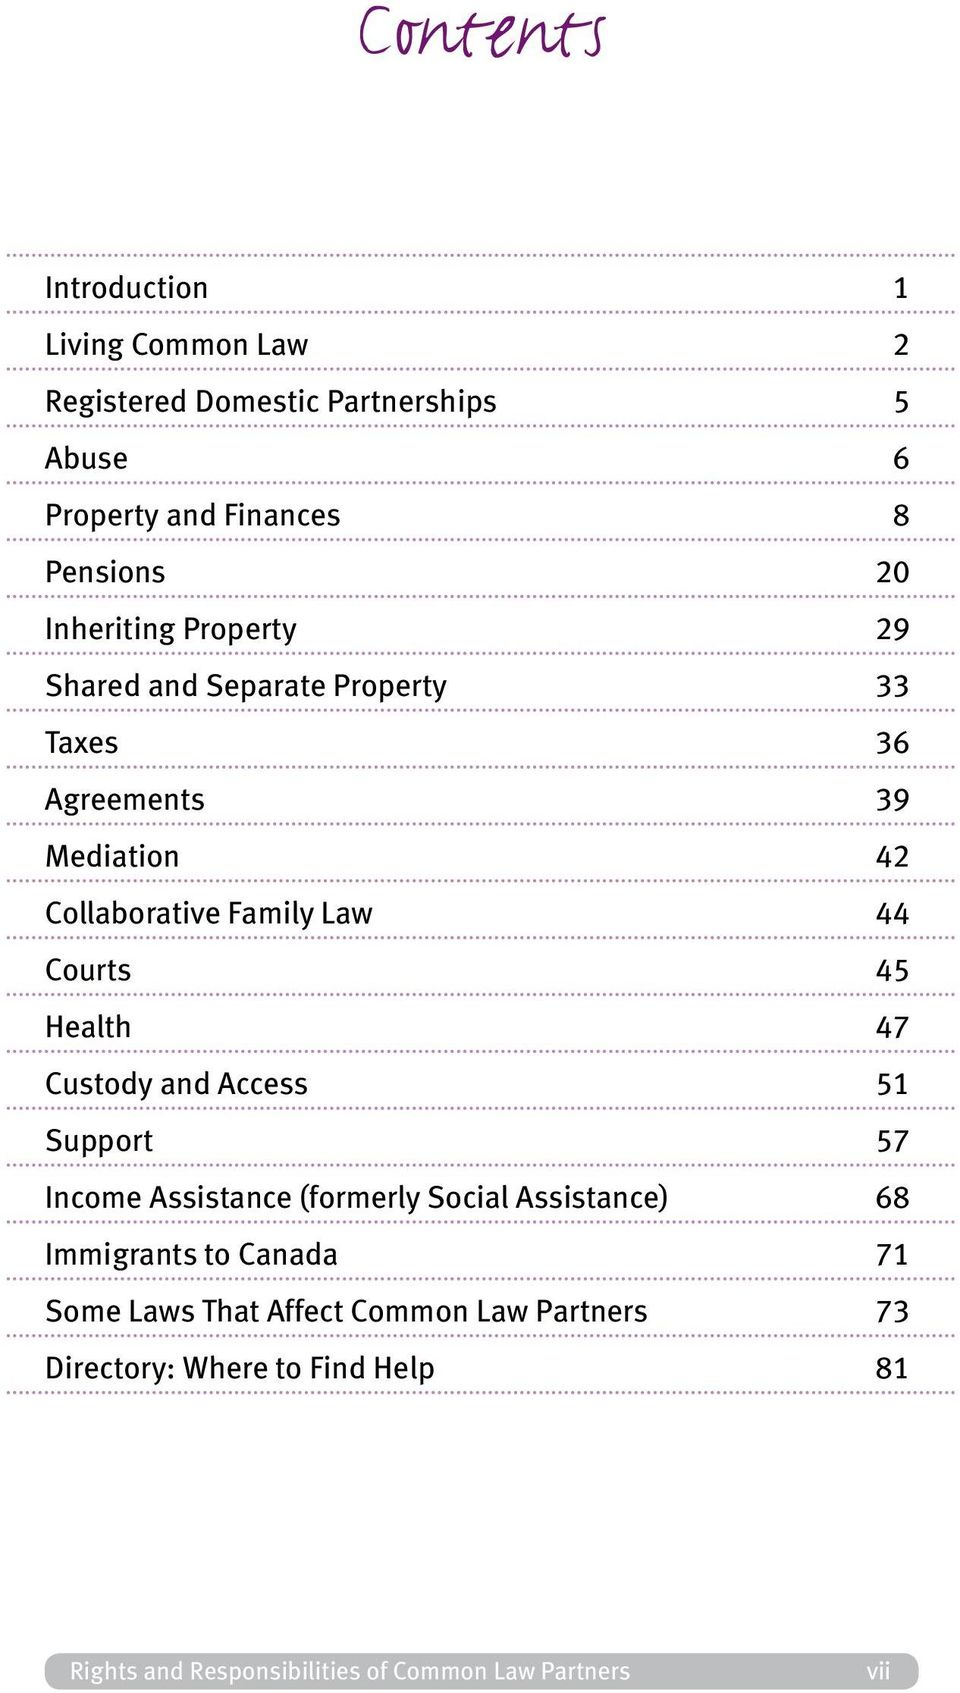 Rights and Responsibilities of Common Law Partners  And they lived